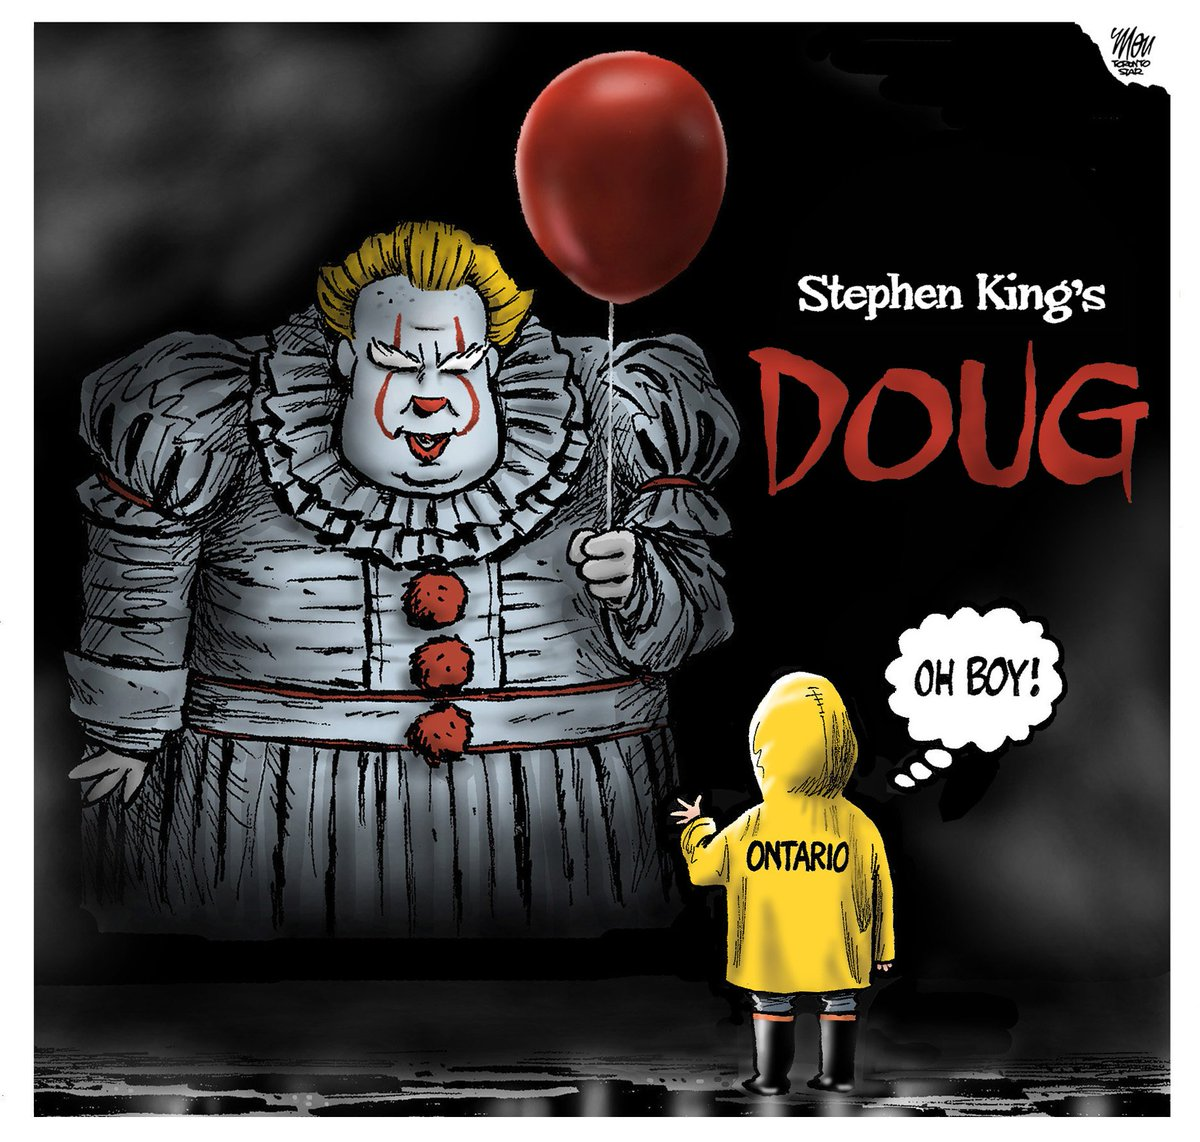 The Cartoon Dept. welcomes our new Premier #DougFord